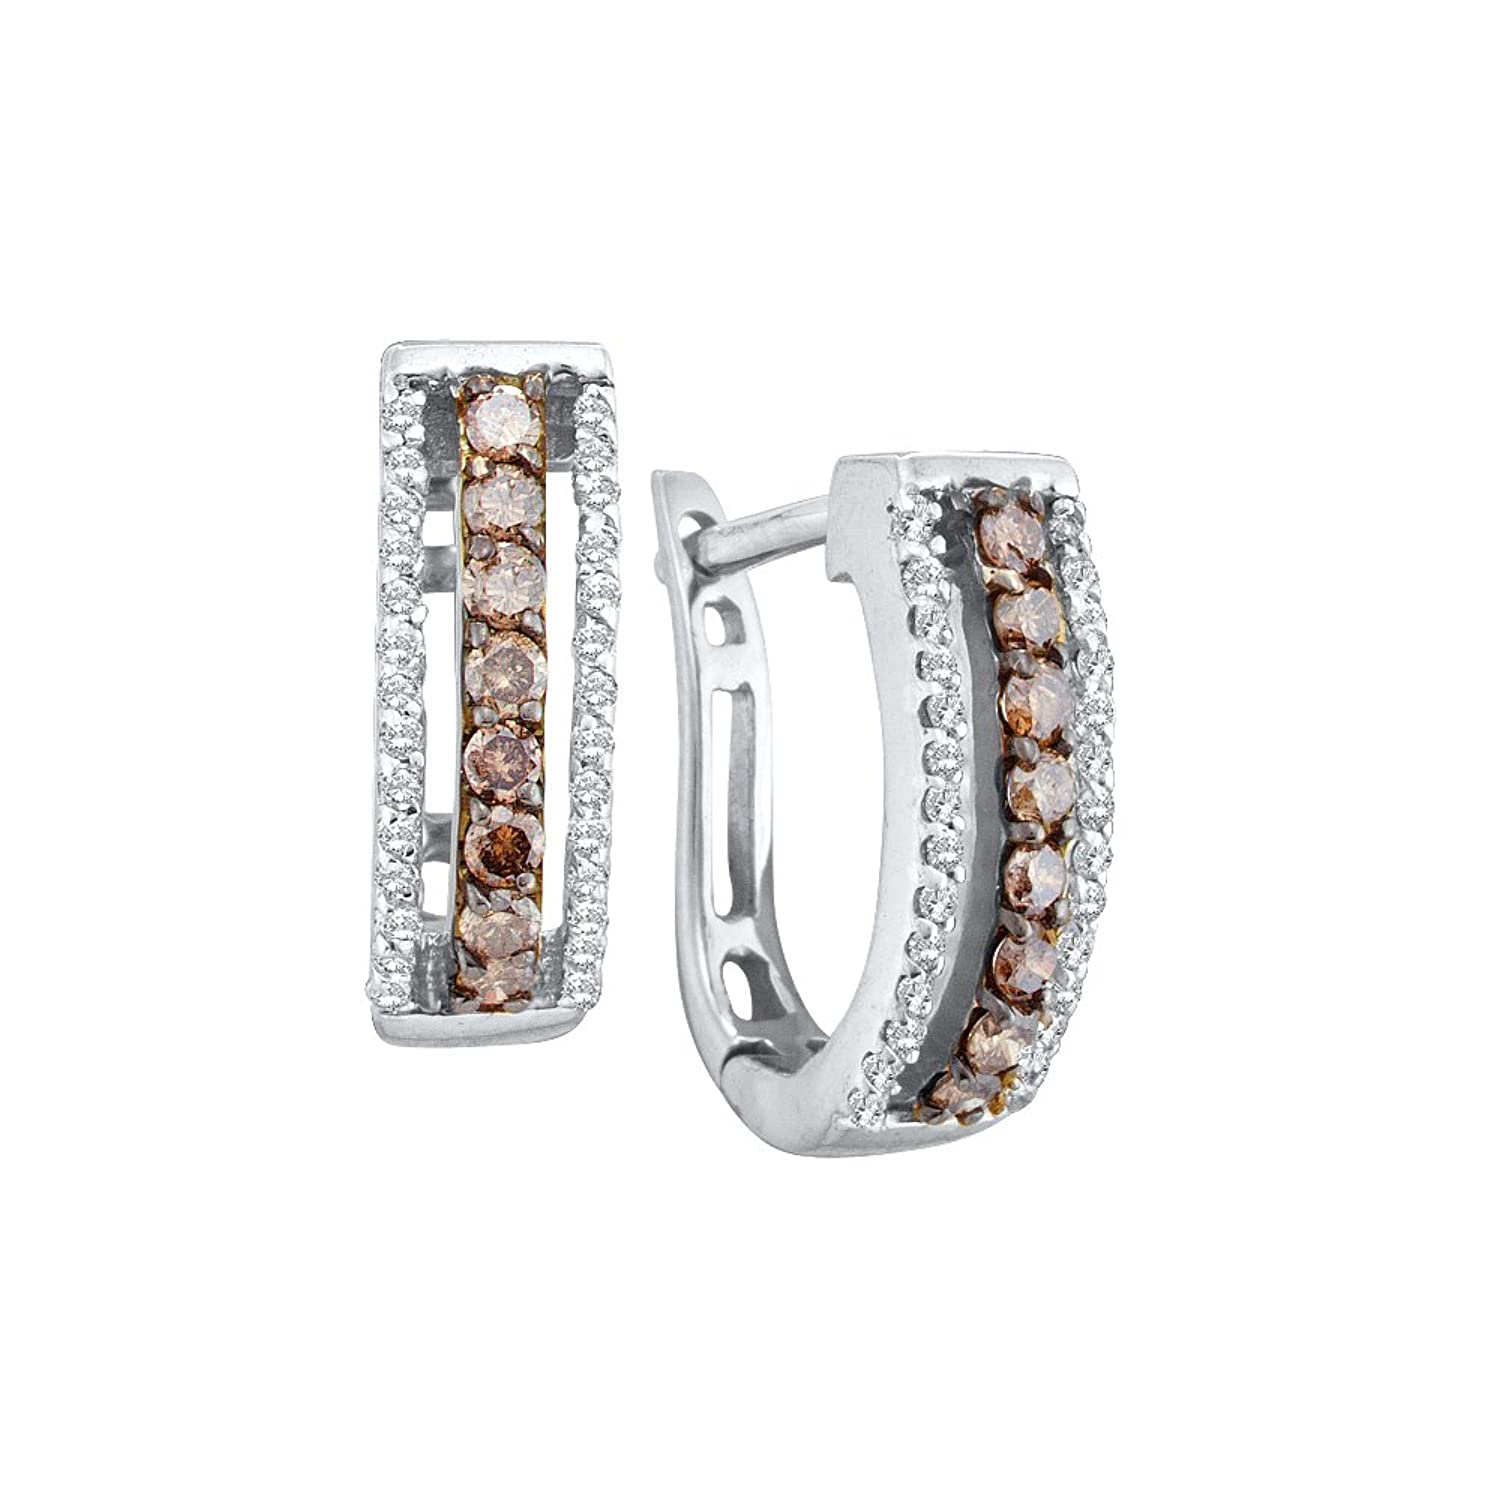 14k Yellow OR White Gold Channel Set Round Cut Brown Chocolate and White Diamond U Shape Earrings – 13mm Height * 5mm Width (1/2 cttw)